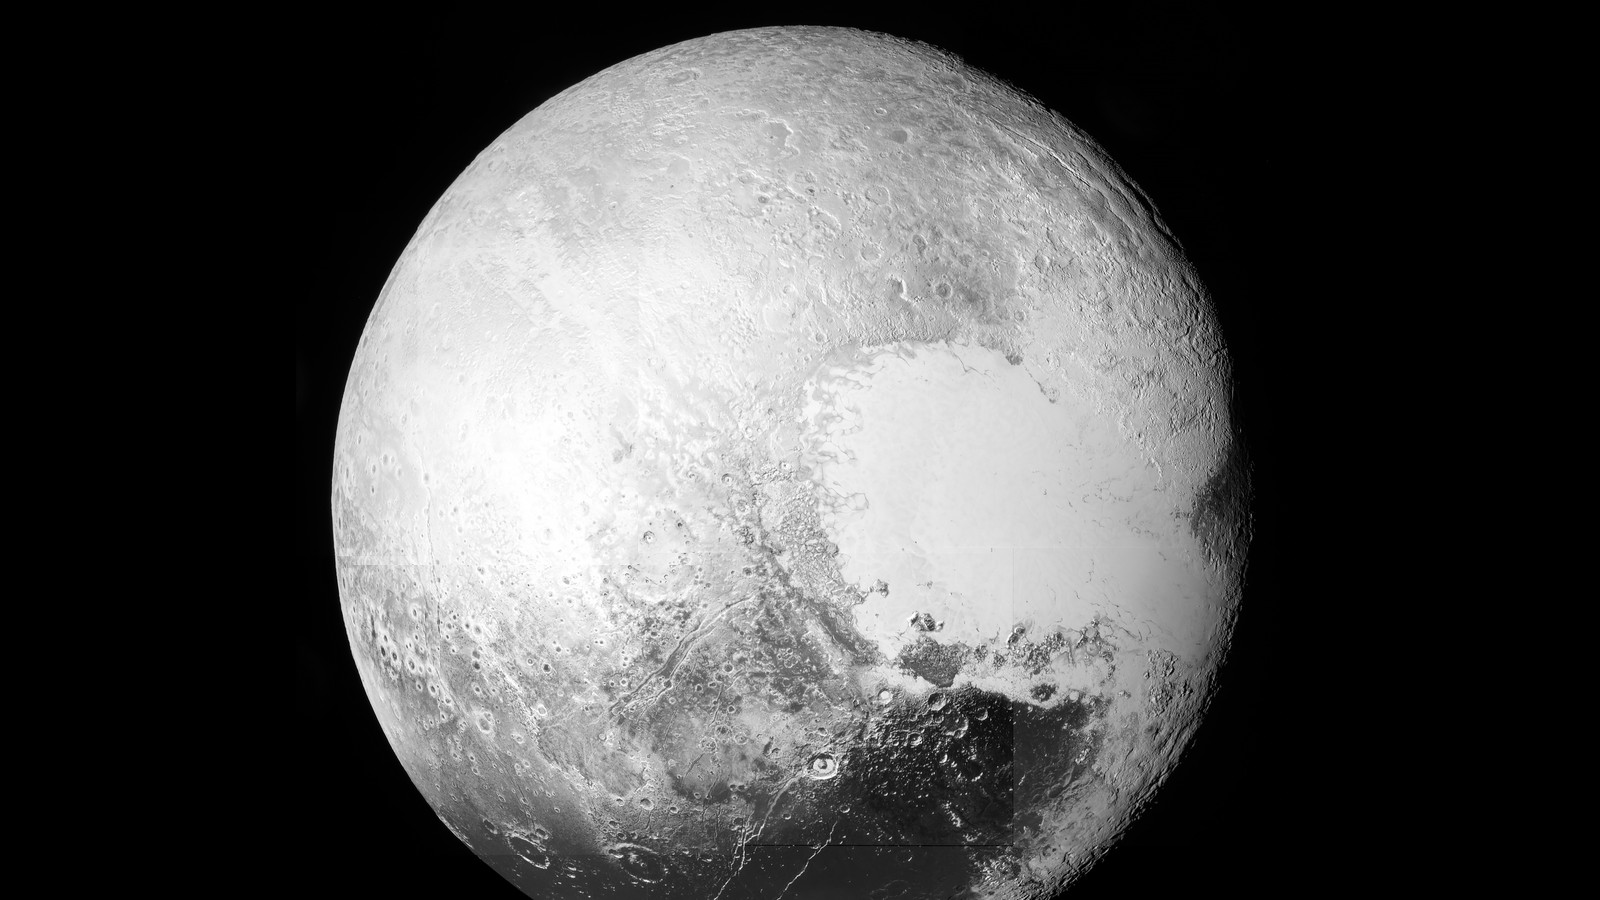 Kerberos Moon Of Plluto: See A New, Full View Of Pluto In High Resolution